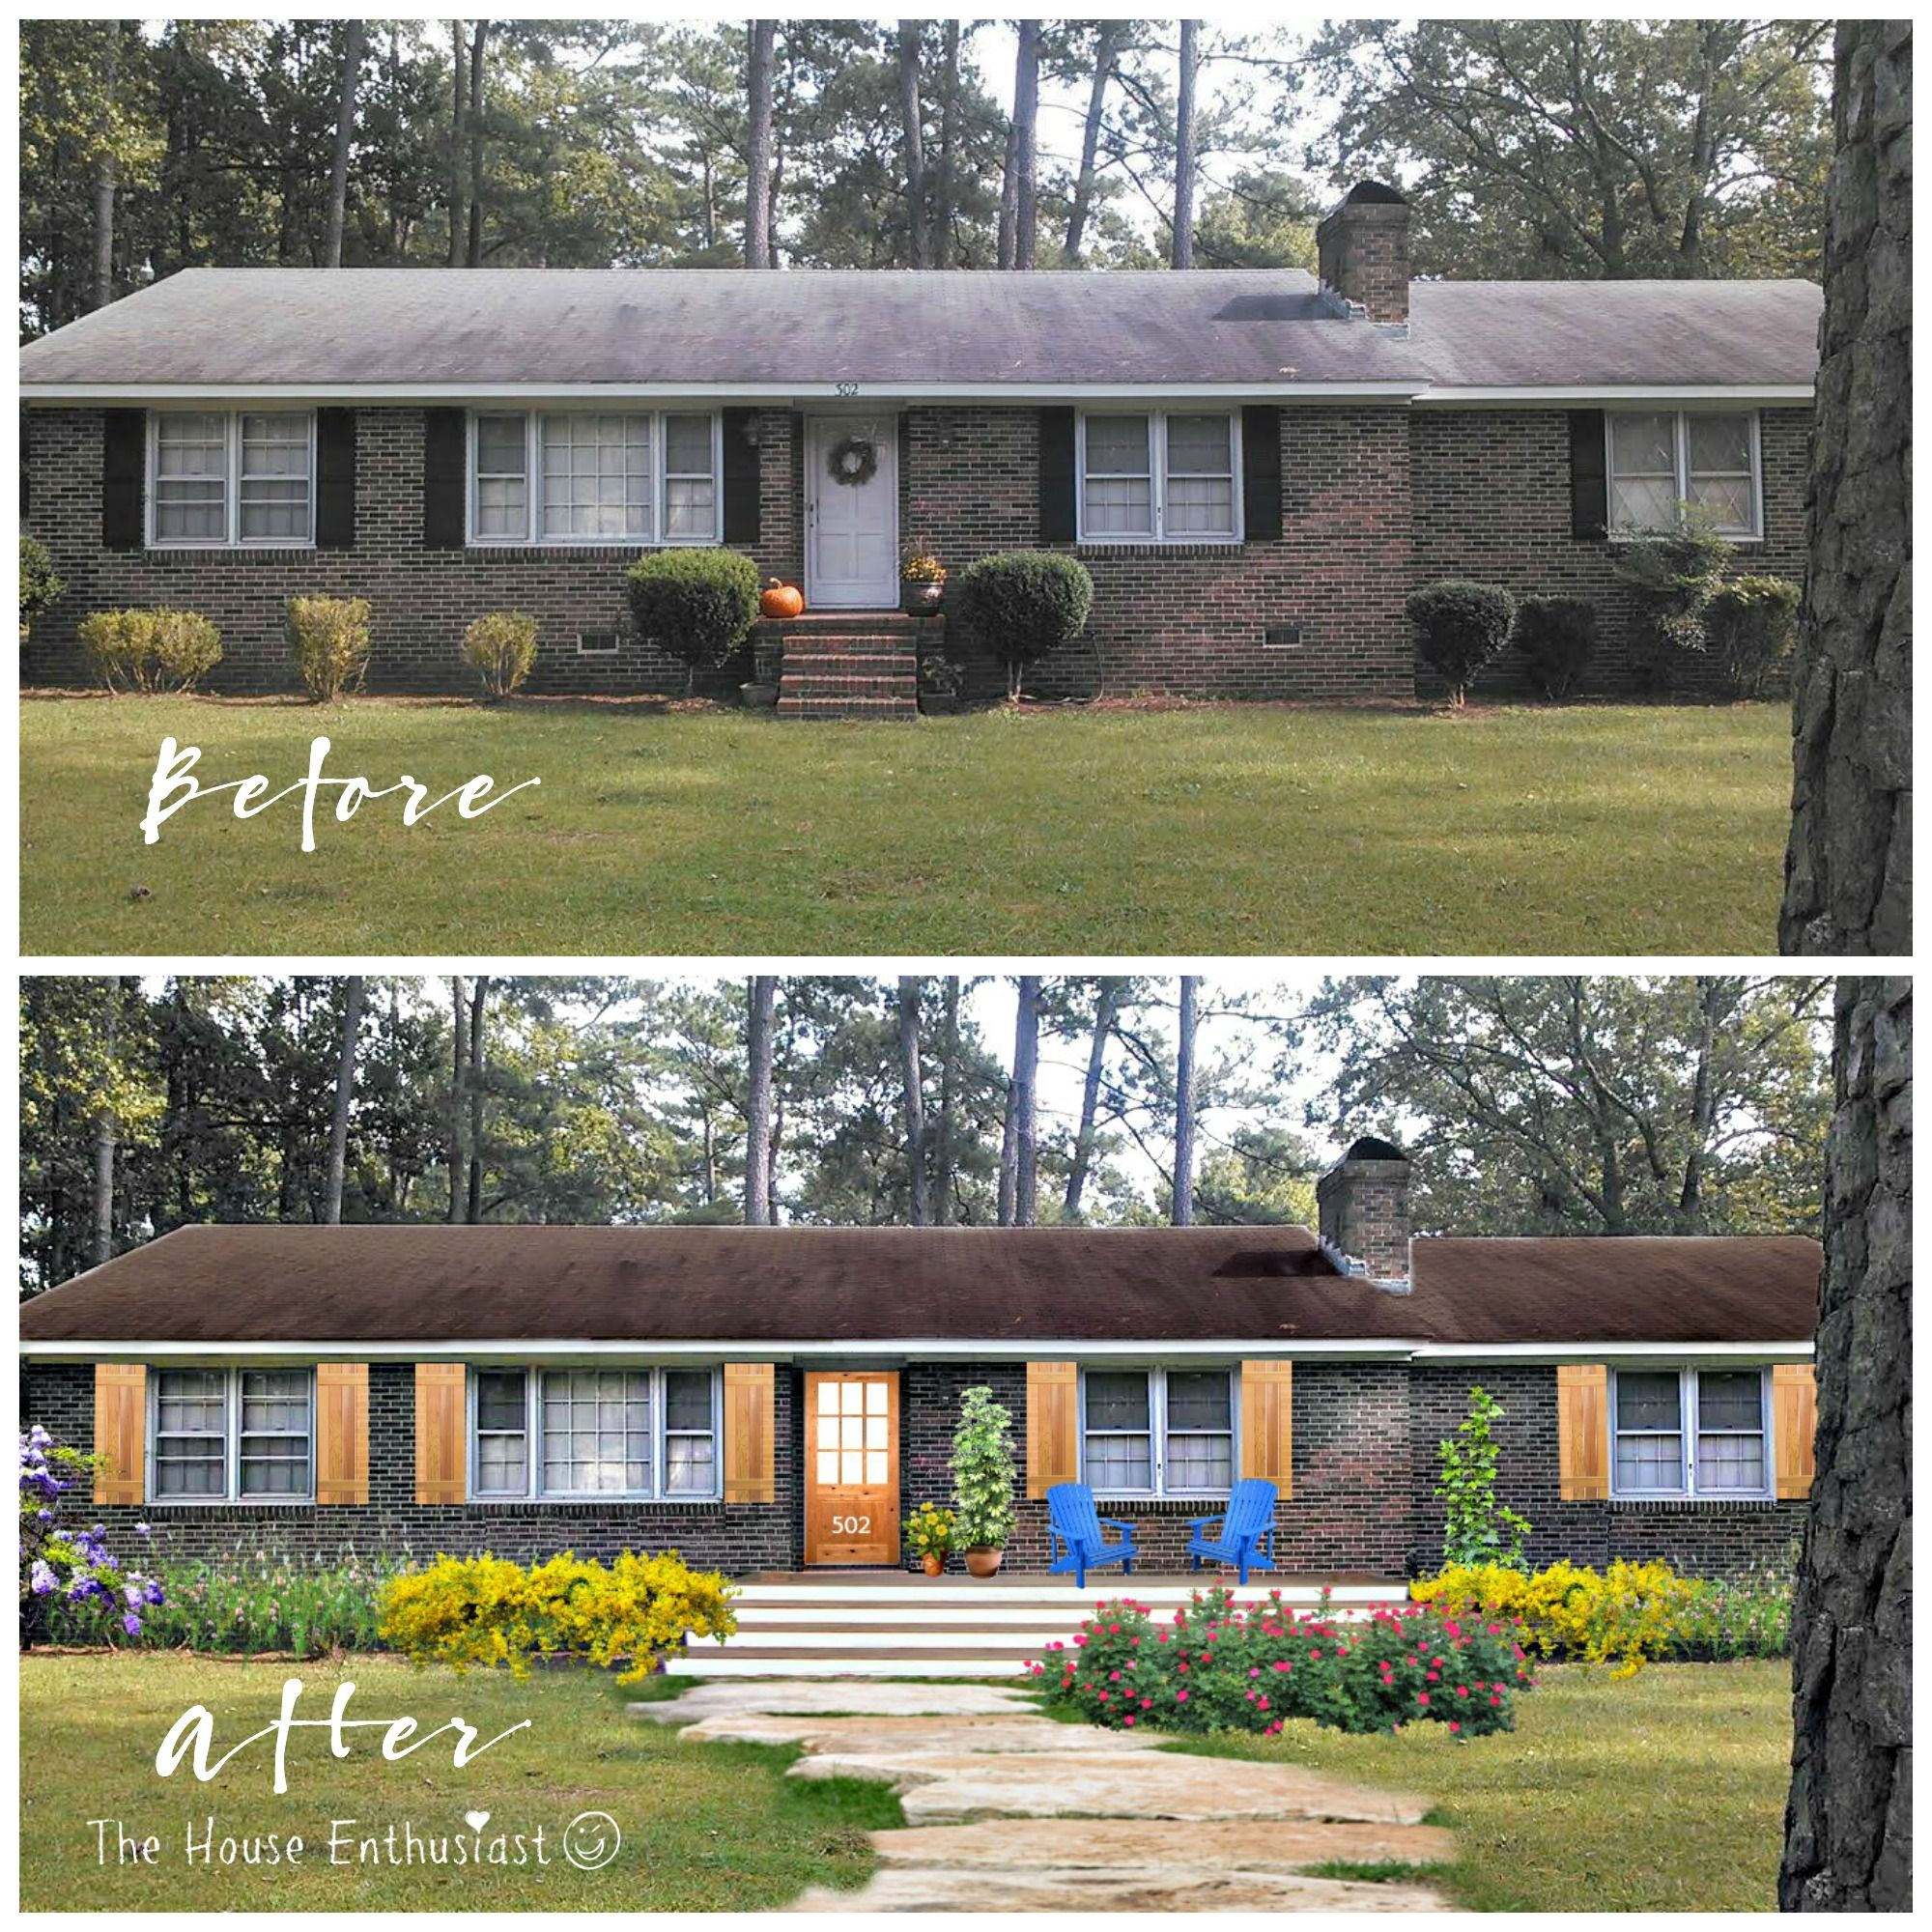 Remodelaholic Reader Wanted Some Fresh Ideas For Their Home Here Are My Before And After Thoughts Ranch House Exterior Ranch House Remodel House Makeovers